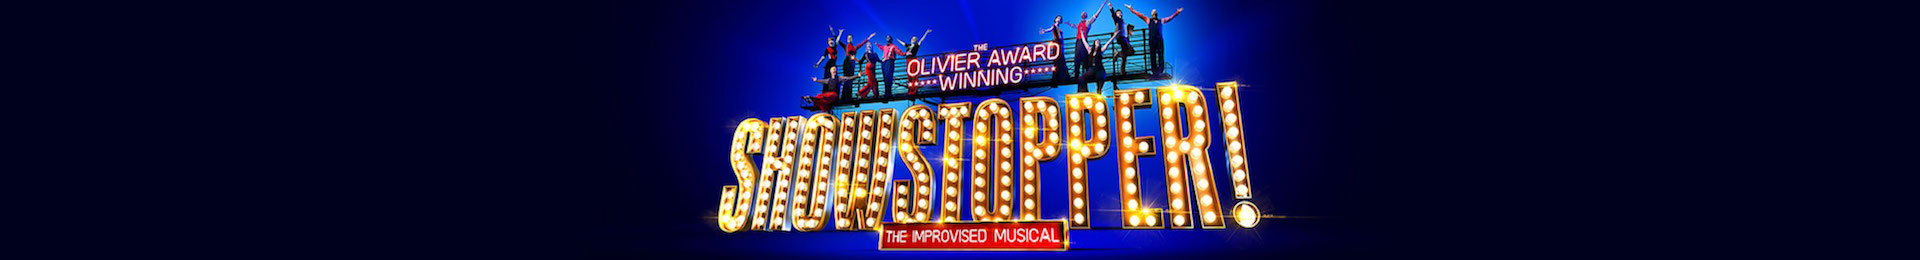 Showstopper! The Improvised Musical Banner